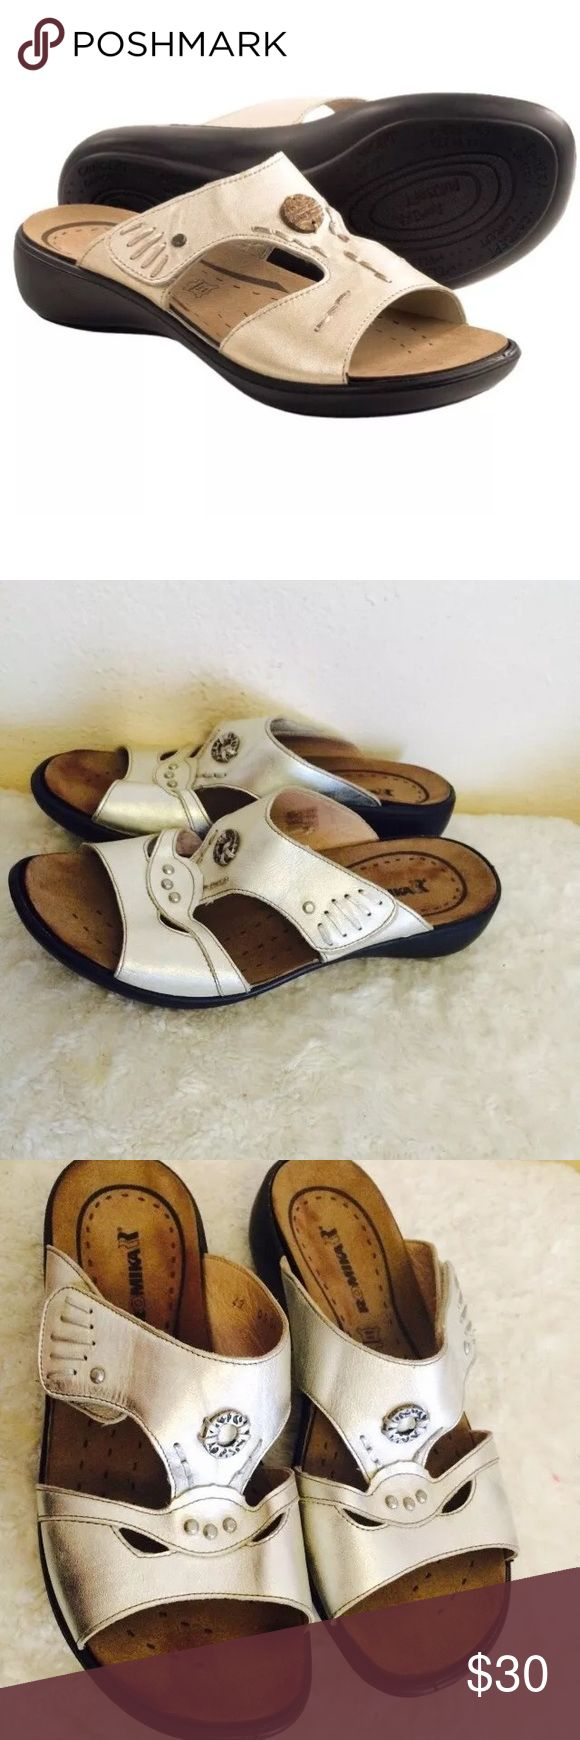 Romika Ibiza leather silver sandals size 13 Romika Ibiza sandals Size 13 Silver leather with Velcro closure  In great condition!! Romika Shoes Sandals